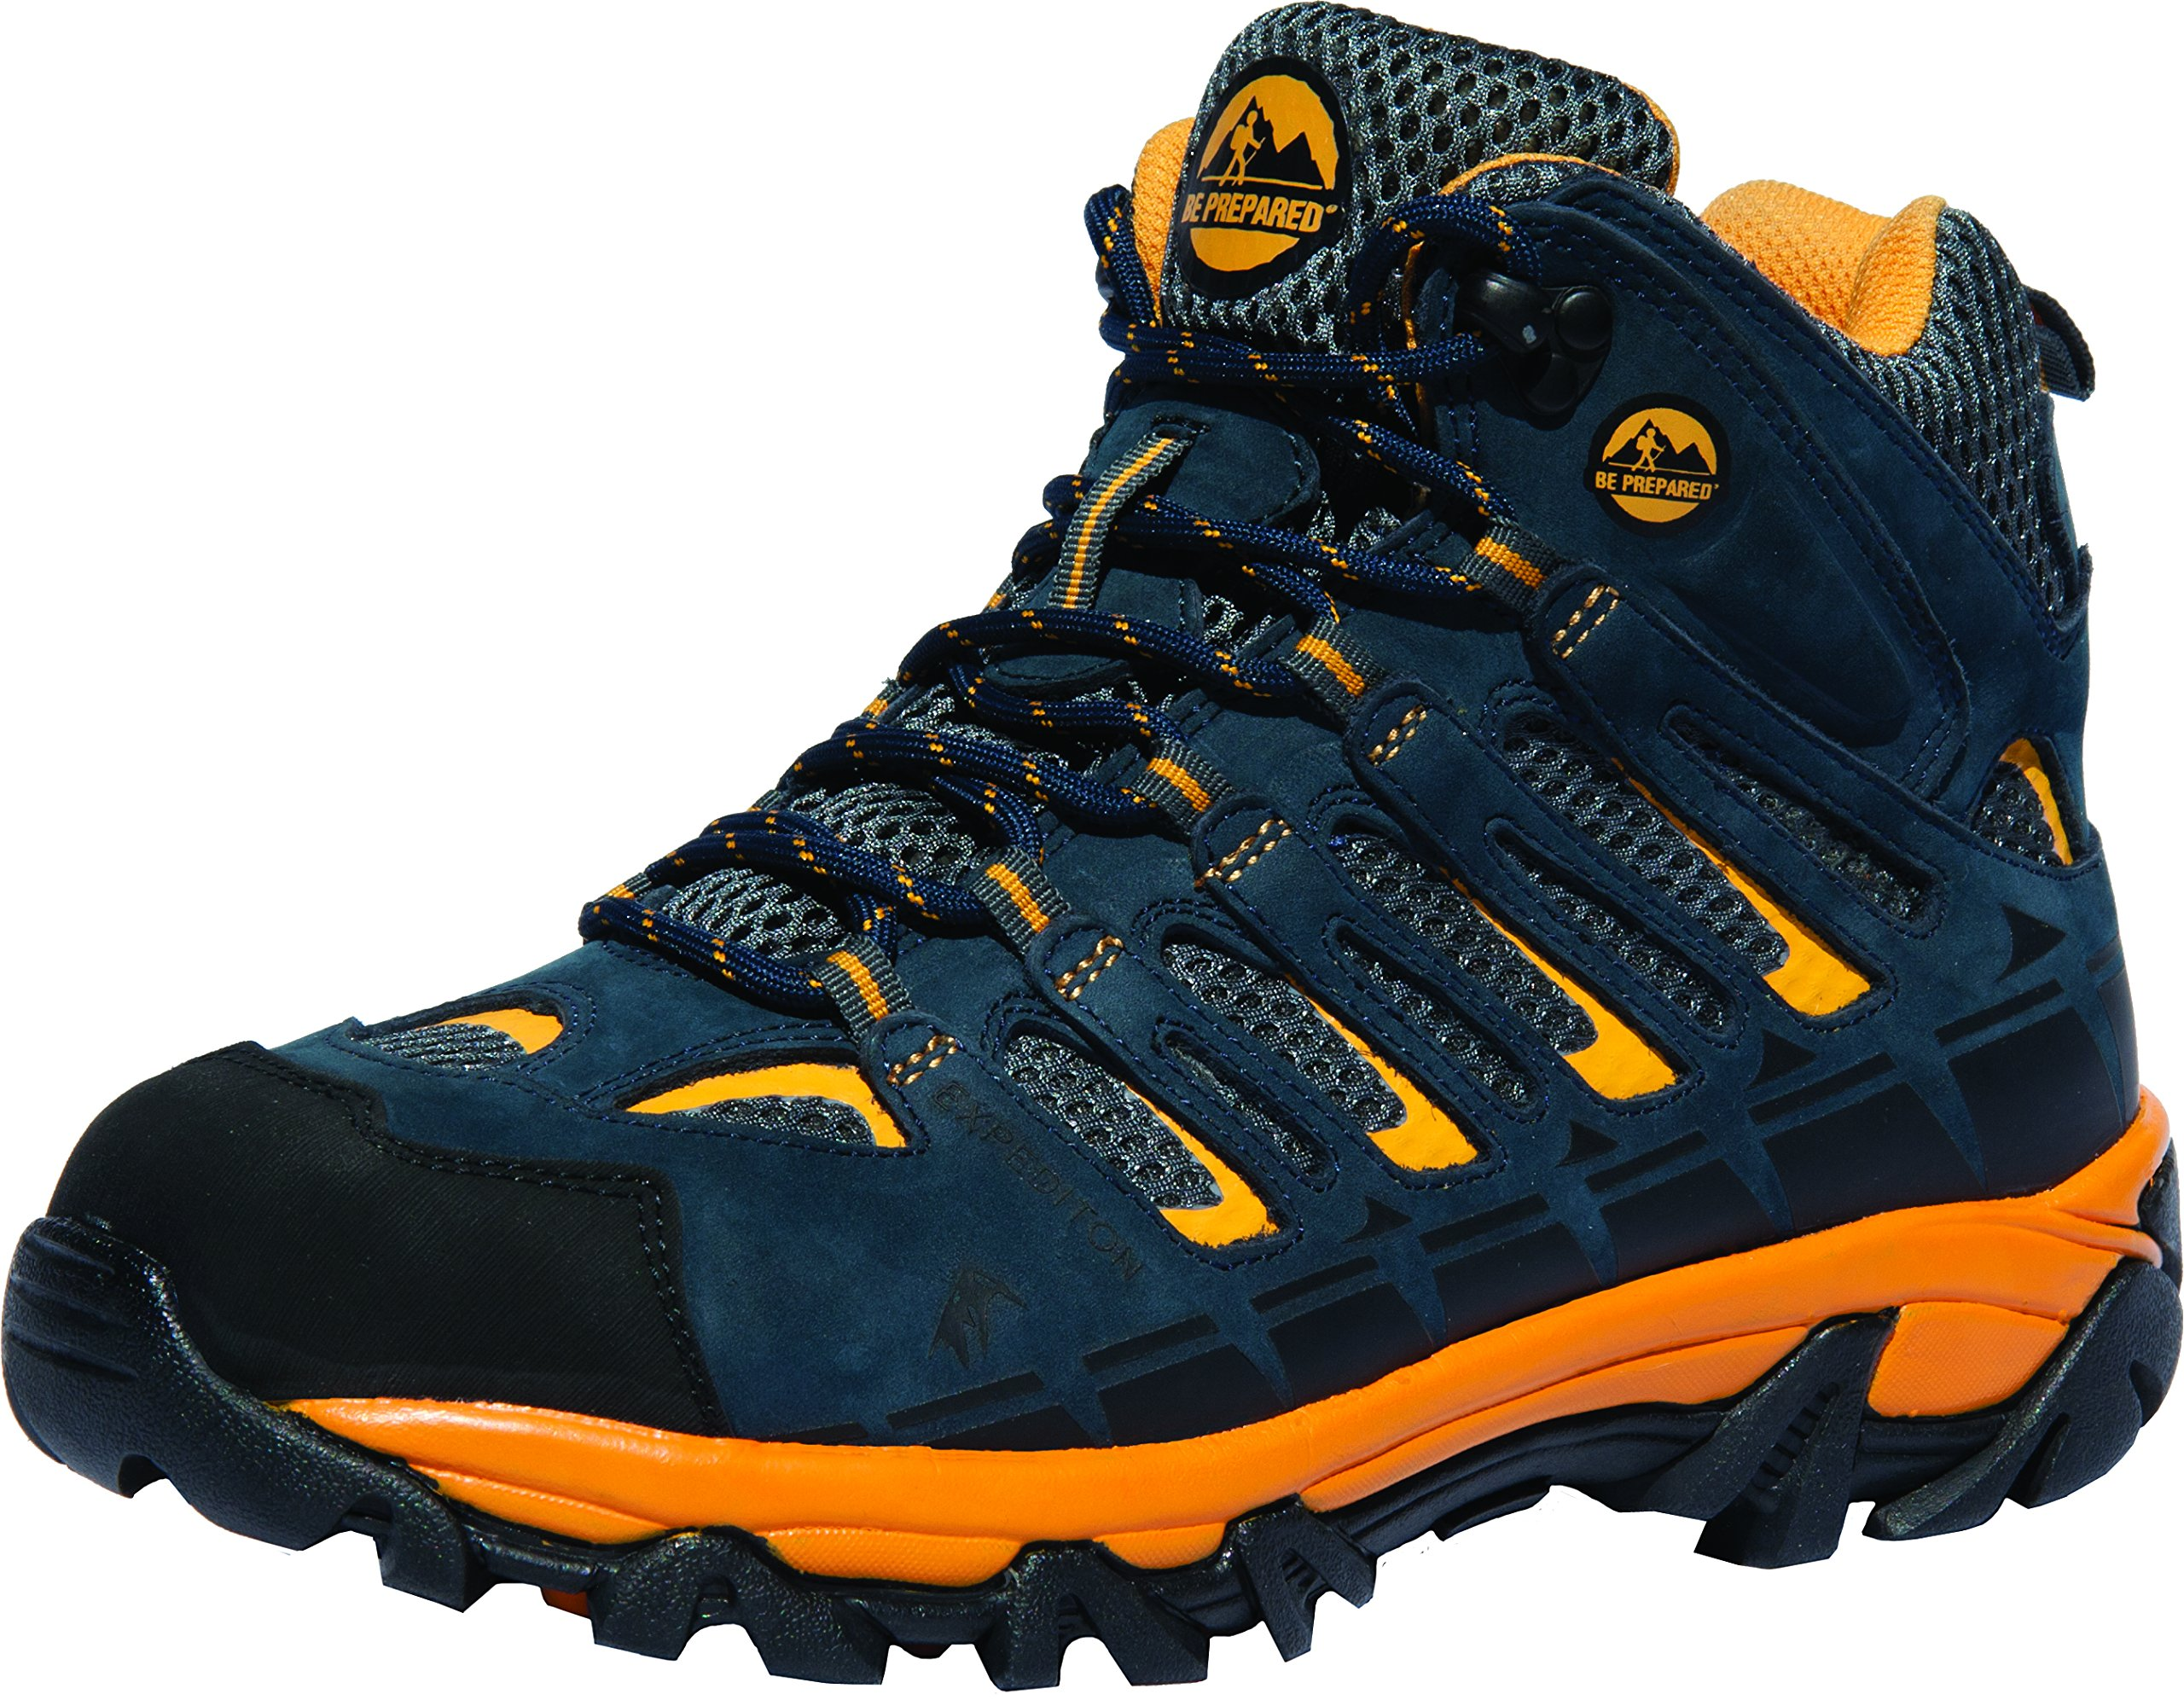 Boy Scouts of America Outdoor Hiking Boots Official Expedition Pro (10, Blue) by Be Prepared